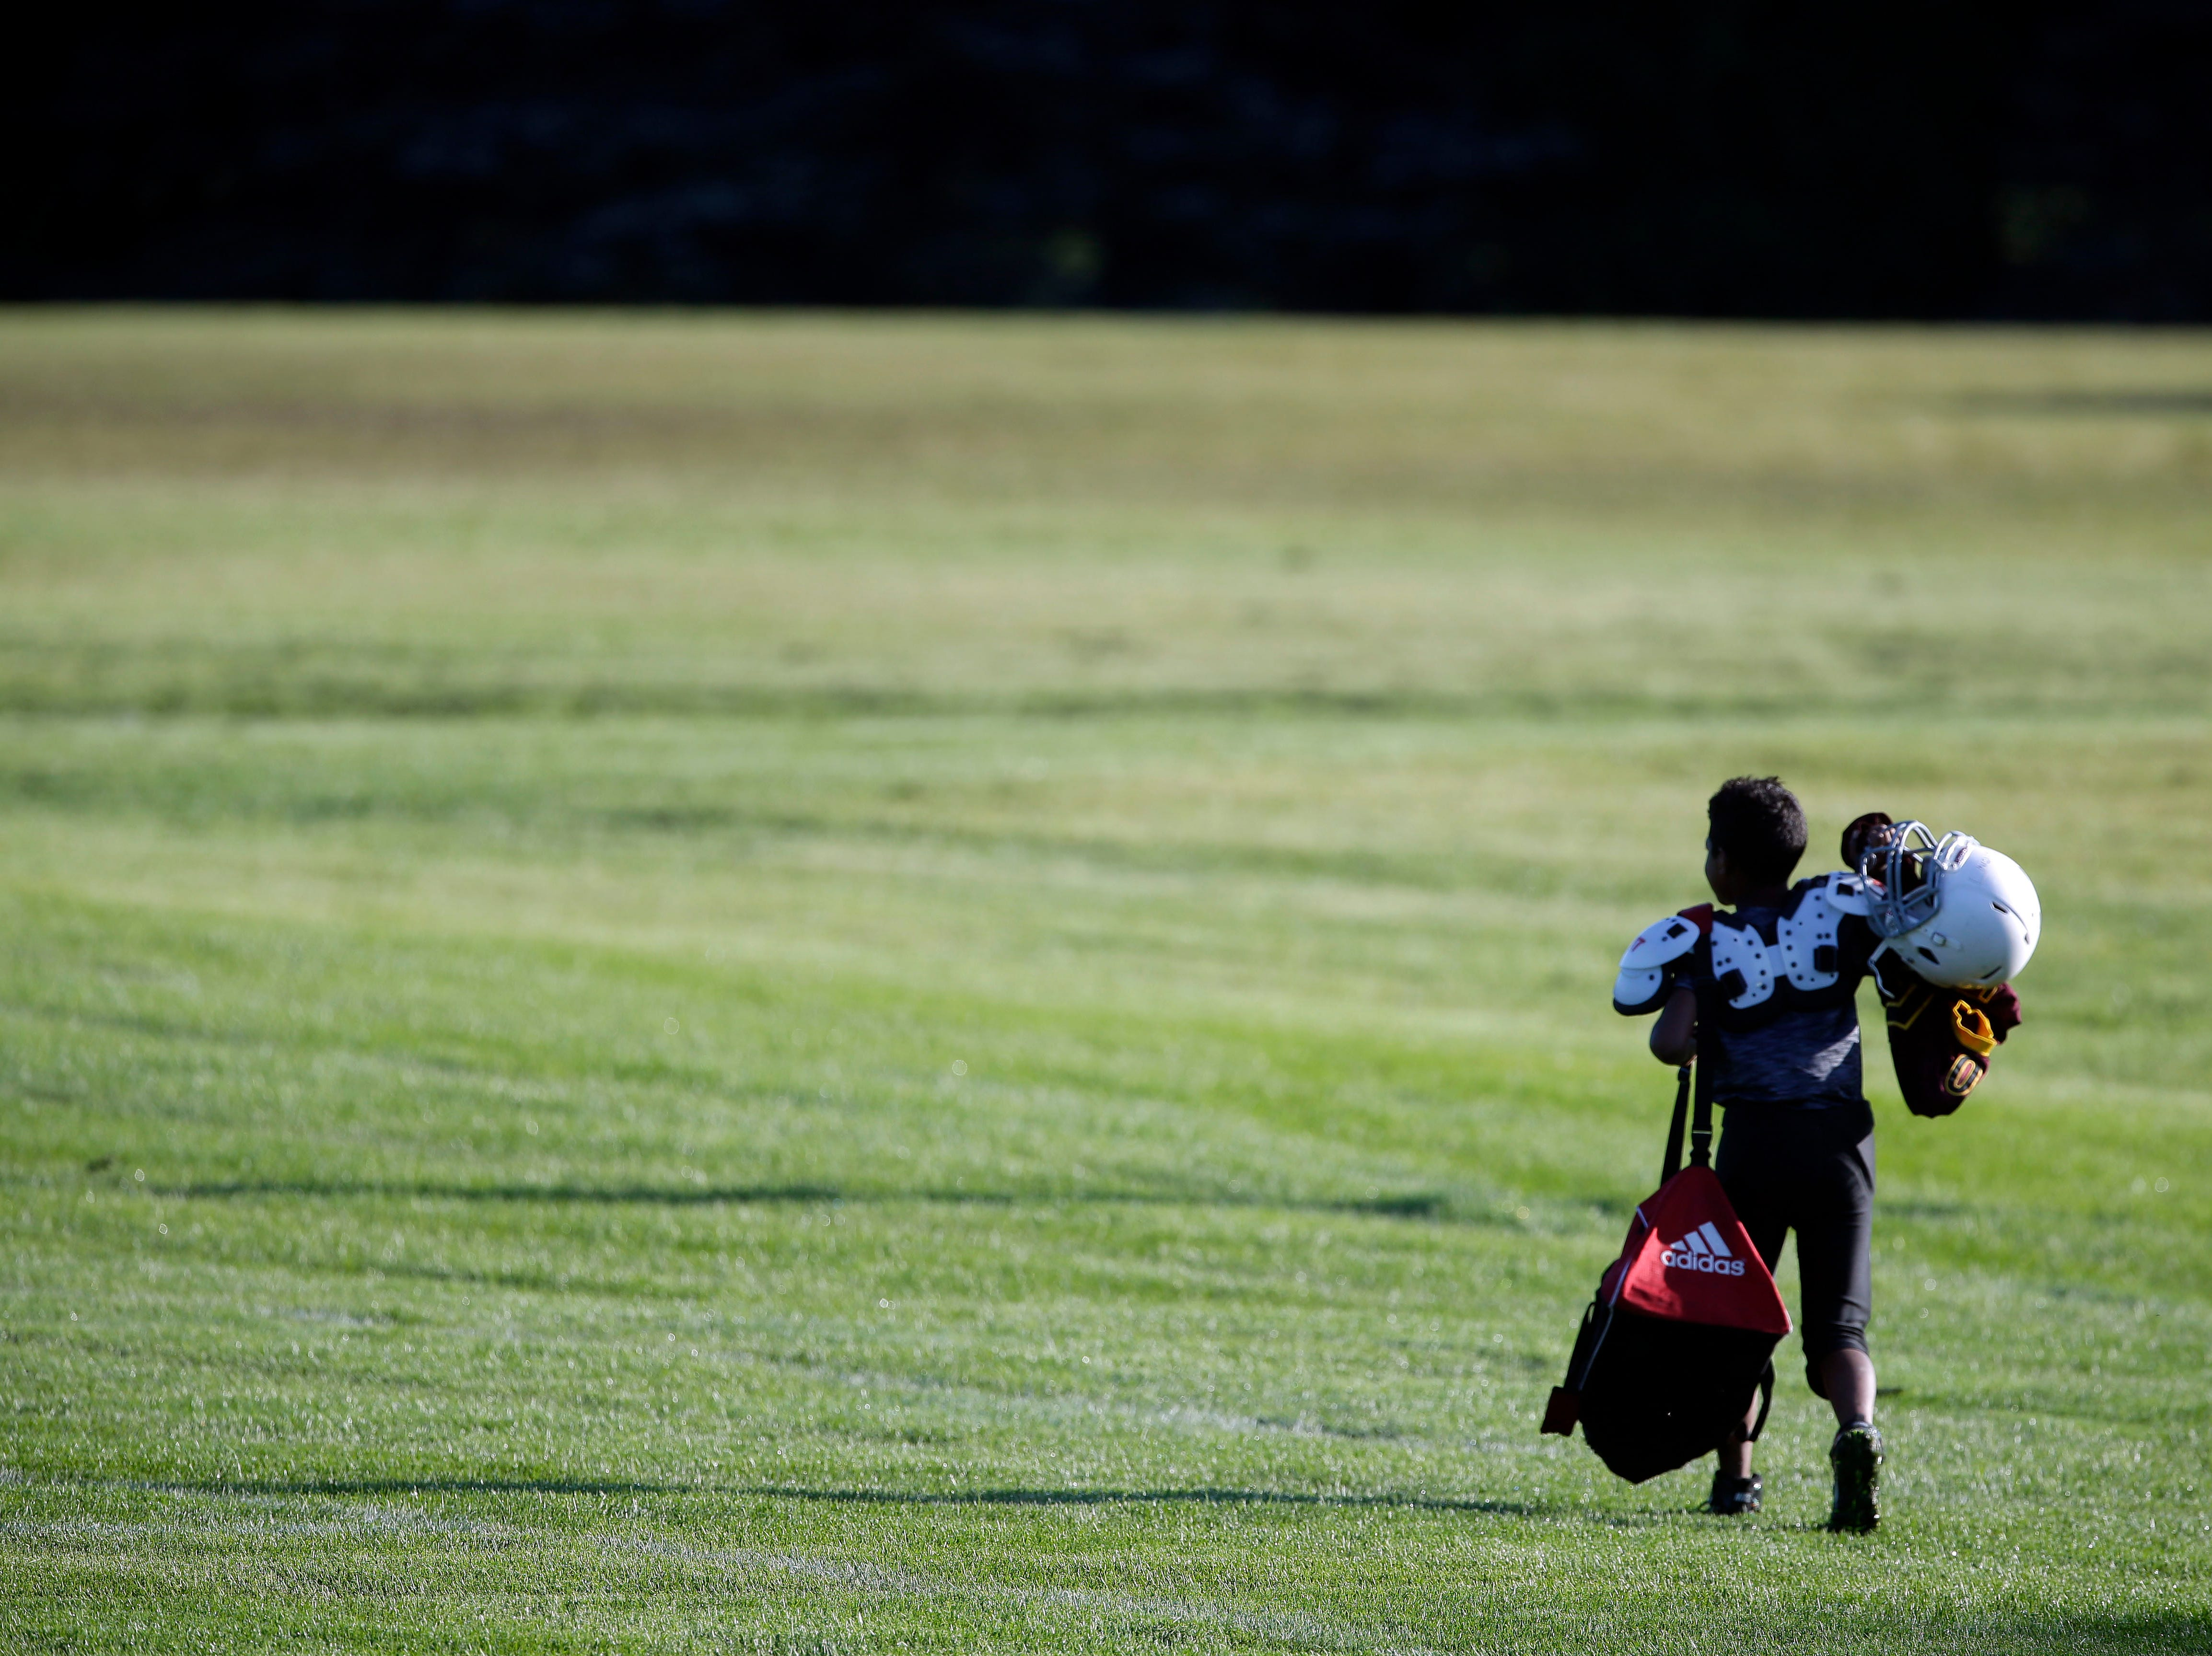 A player joins his team to warm-up as Fox Valley Pop Warner Football opens the season Saturday, September 8, 2018, at Plamann Park in Grand Chute, Wis.Ron Page/USA TODAY NETWORK-Wisconsin